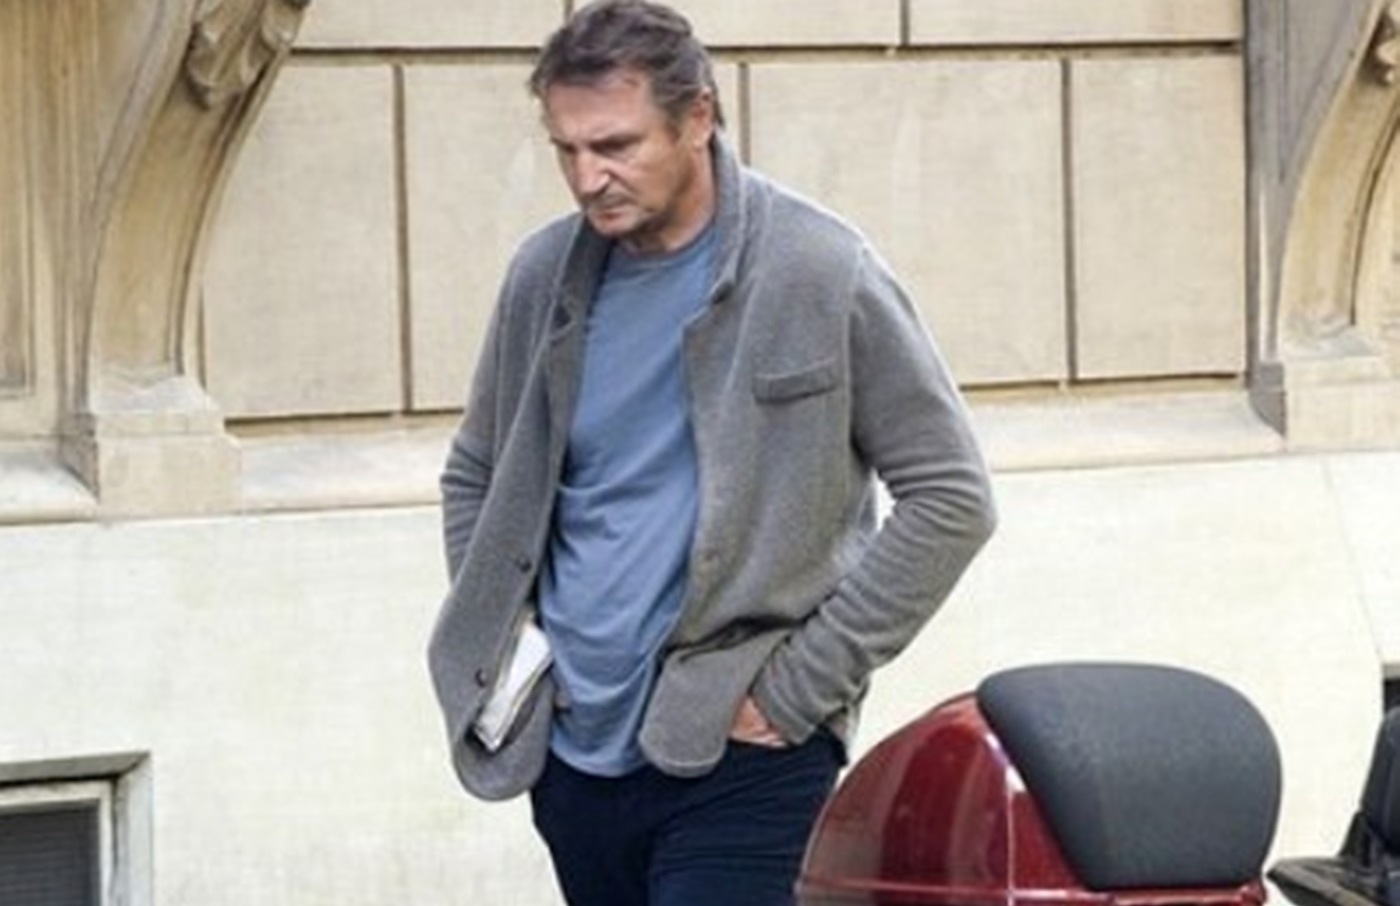 Liam Neeson Undergoing Shoulder Surgery